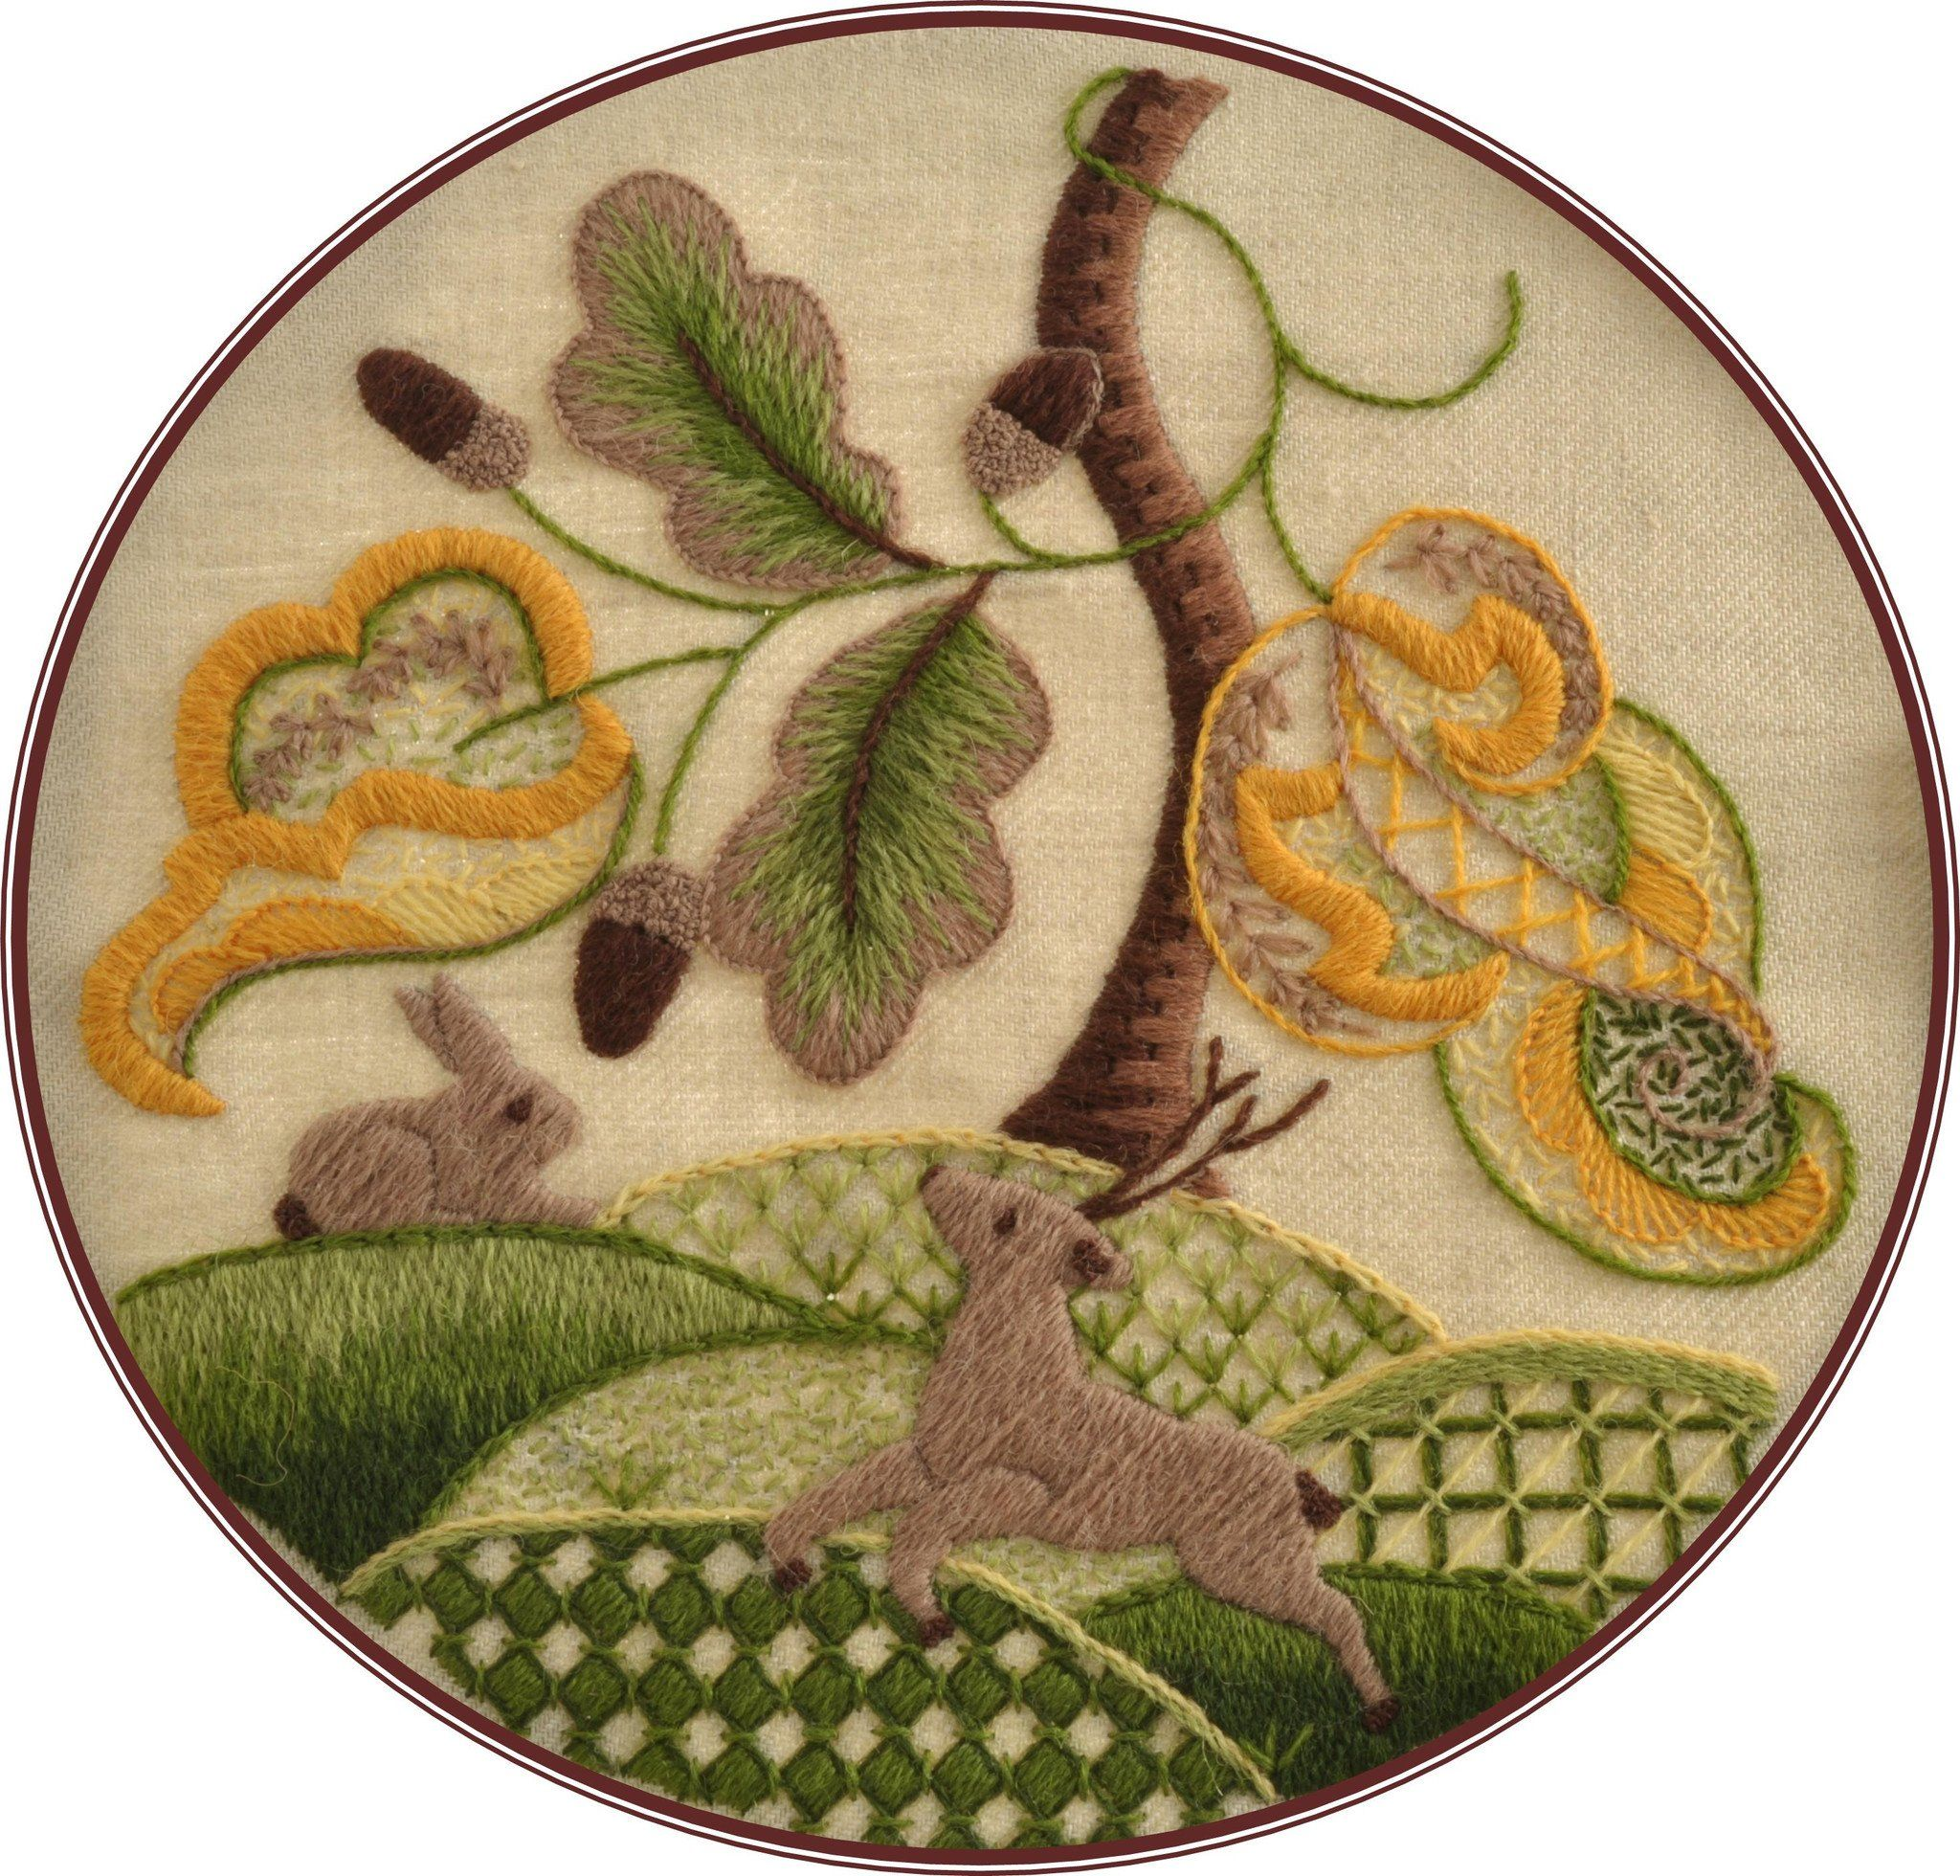 Crewel work woodland animals wool thread embroidery techniques